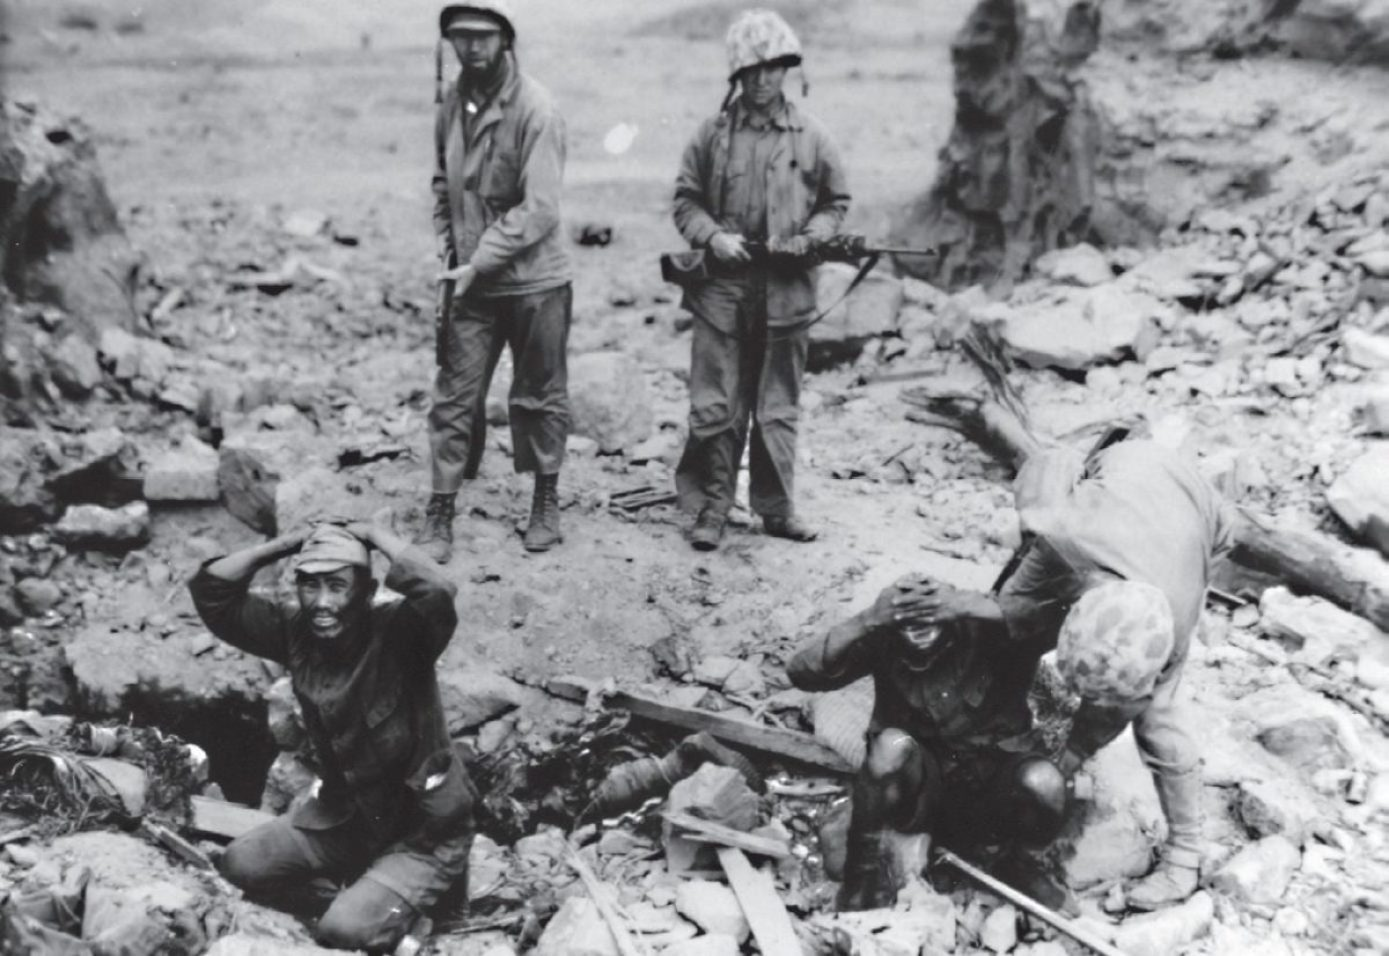 """The Japanese soldiers' philosophy of non-surrender made capturing them alive something of a rarity on Iwo Jima. The """"Courageous Battle Vows"""" of the island's defenders read as follows: """"Above all, we shall dedicate ourselves and our entire strength to the defense of this island. We shall grasp bombs, charge enemy tanks and destroy them. We shall infiltrate into the midst of the enemy and annihilate them."""" U.S. MARINE CORPS HISTORICAL CENTER"""